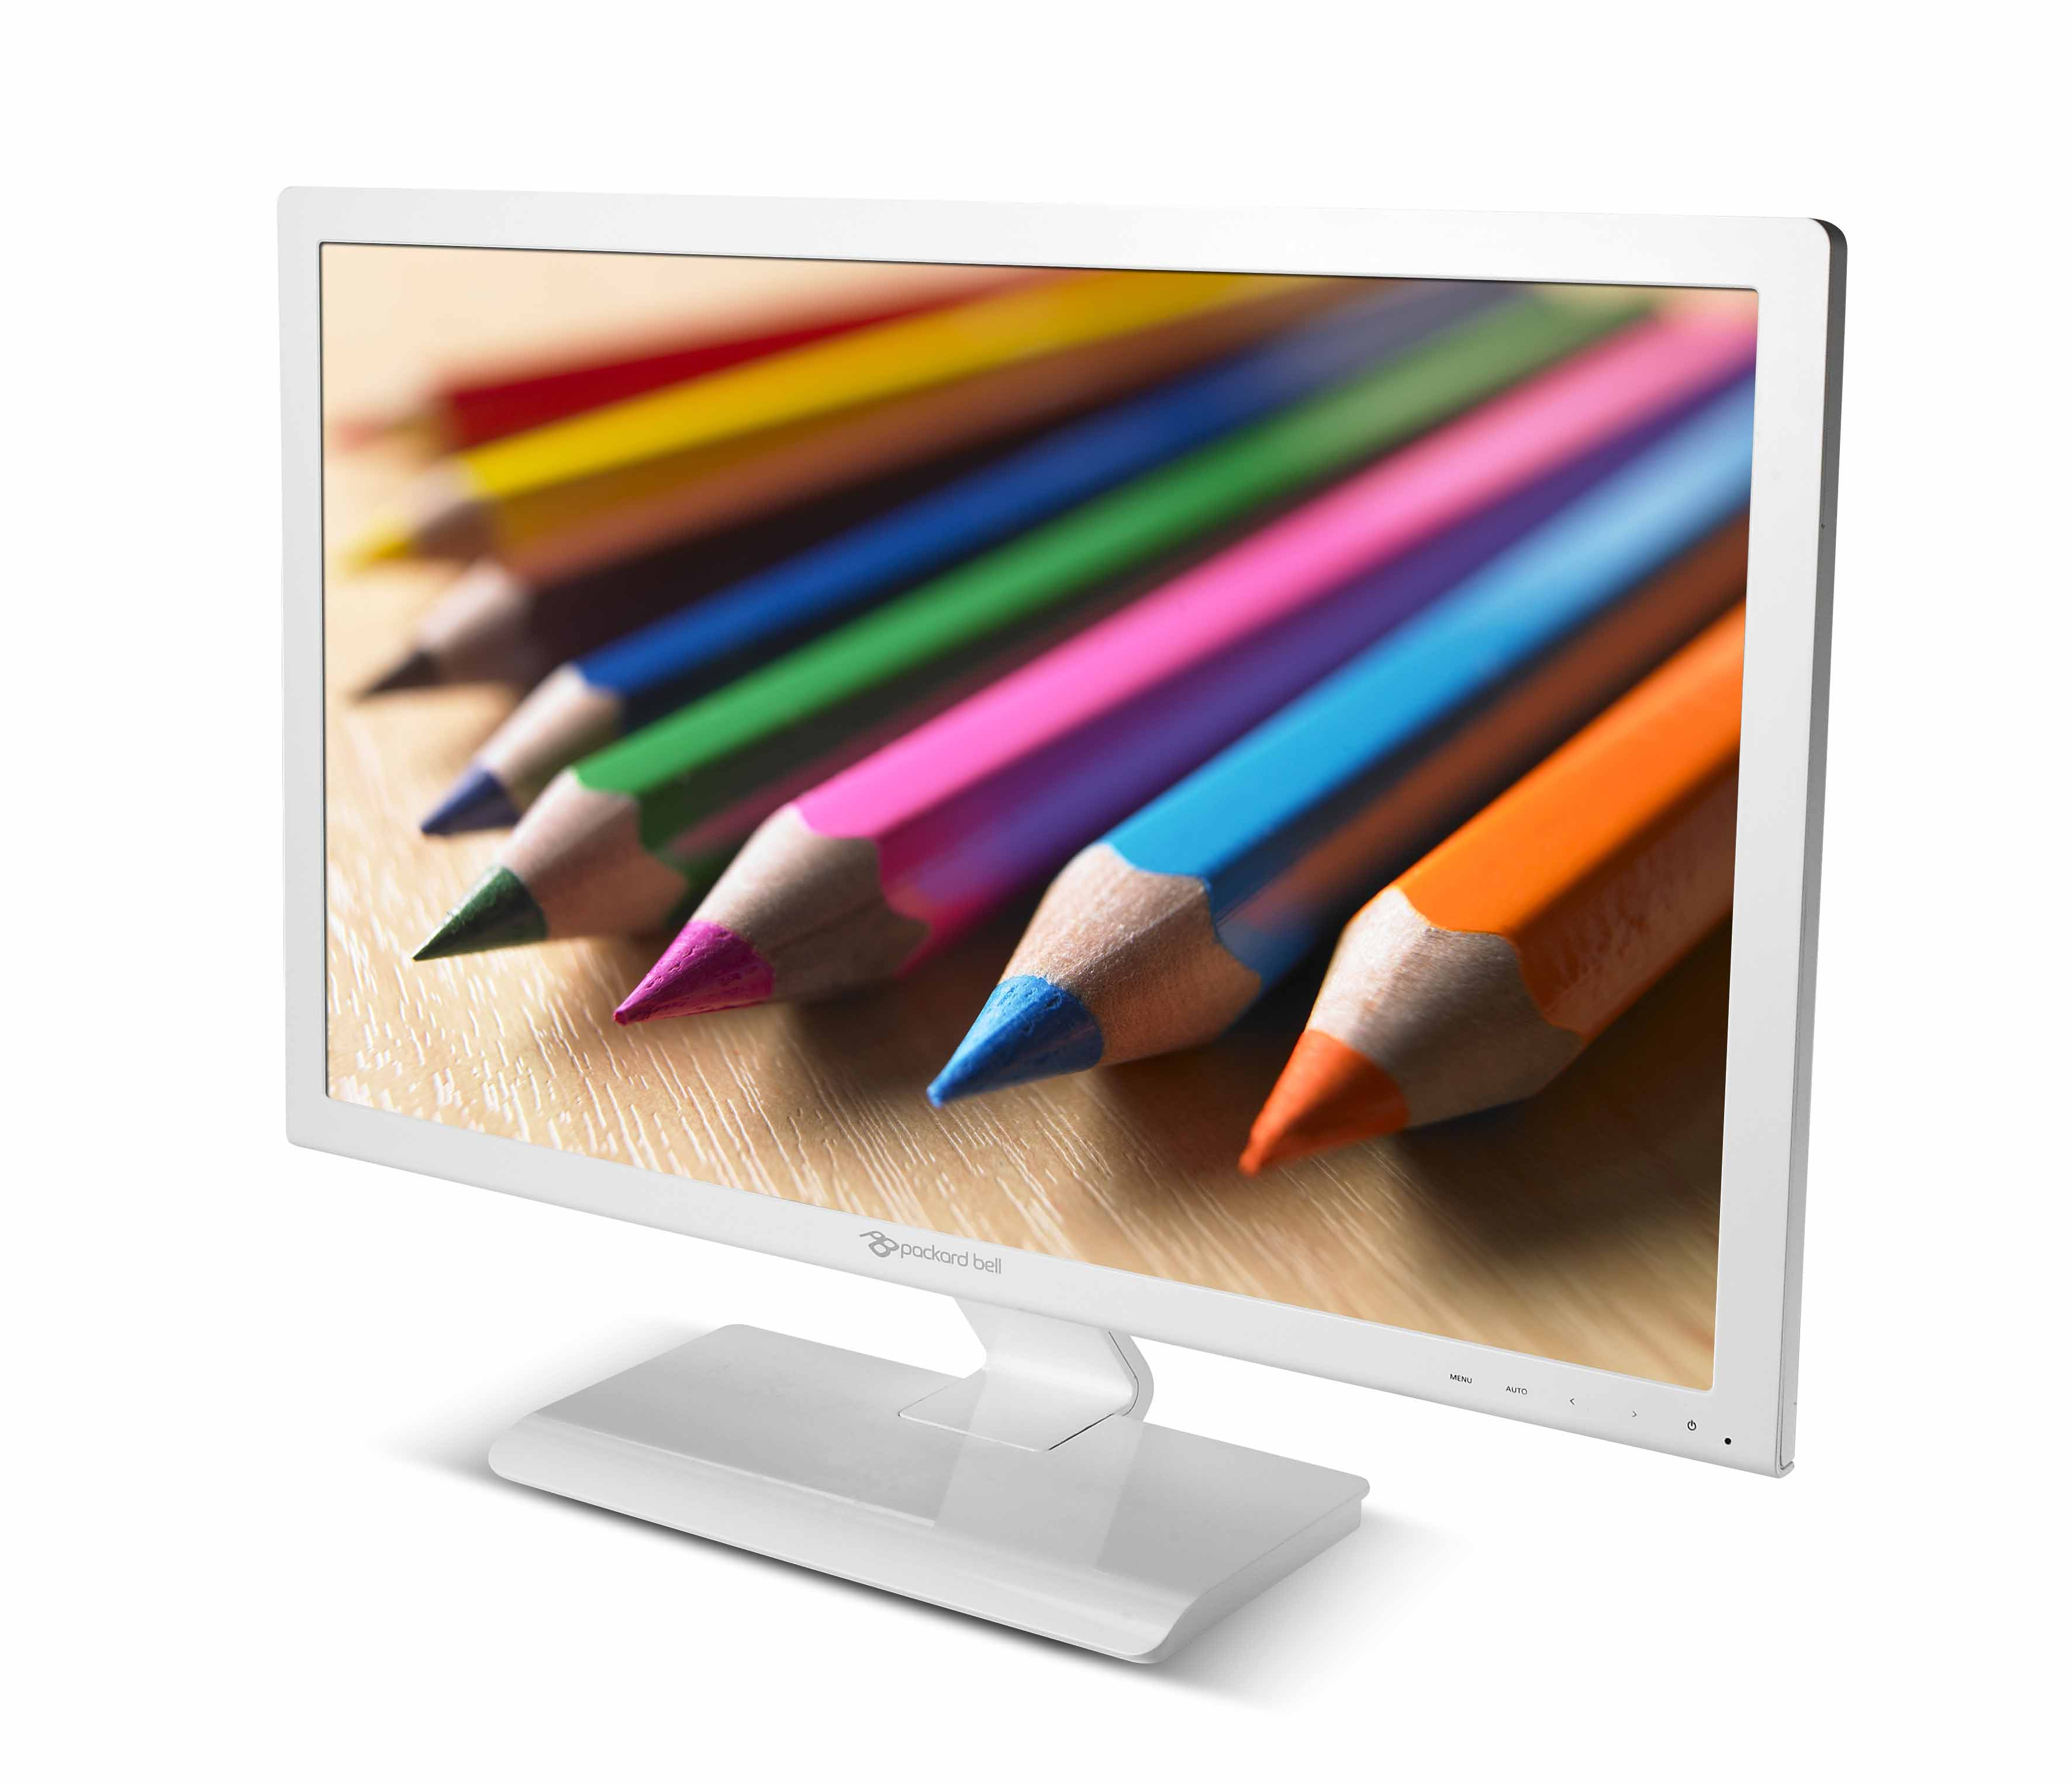 Monitor Maestro White 240 Led di Packard Bell: foto, specifiche e prezzi